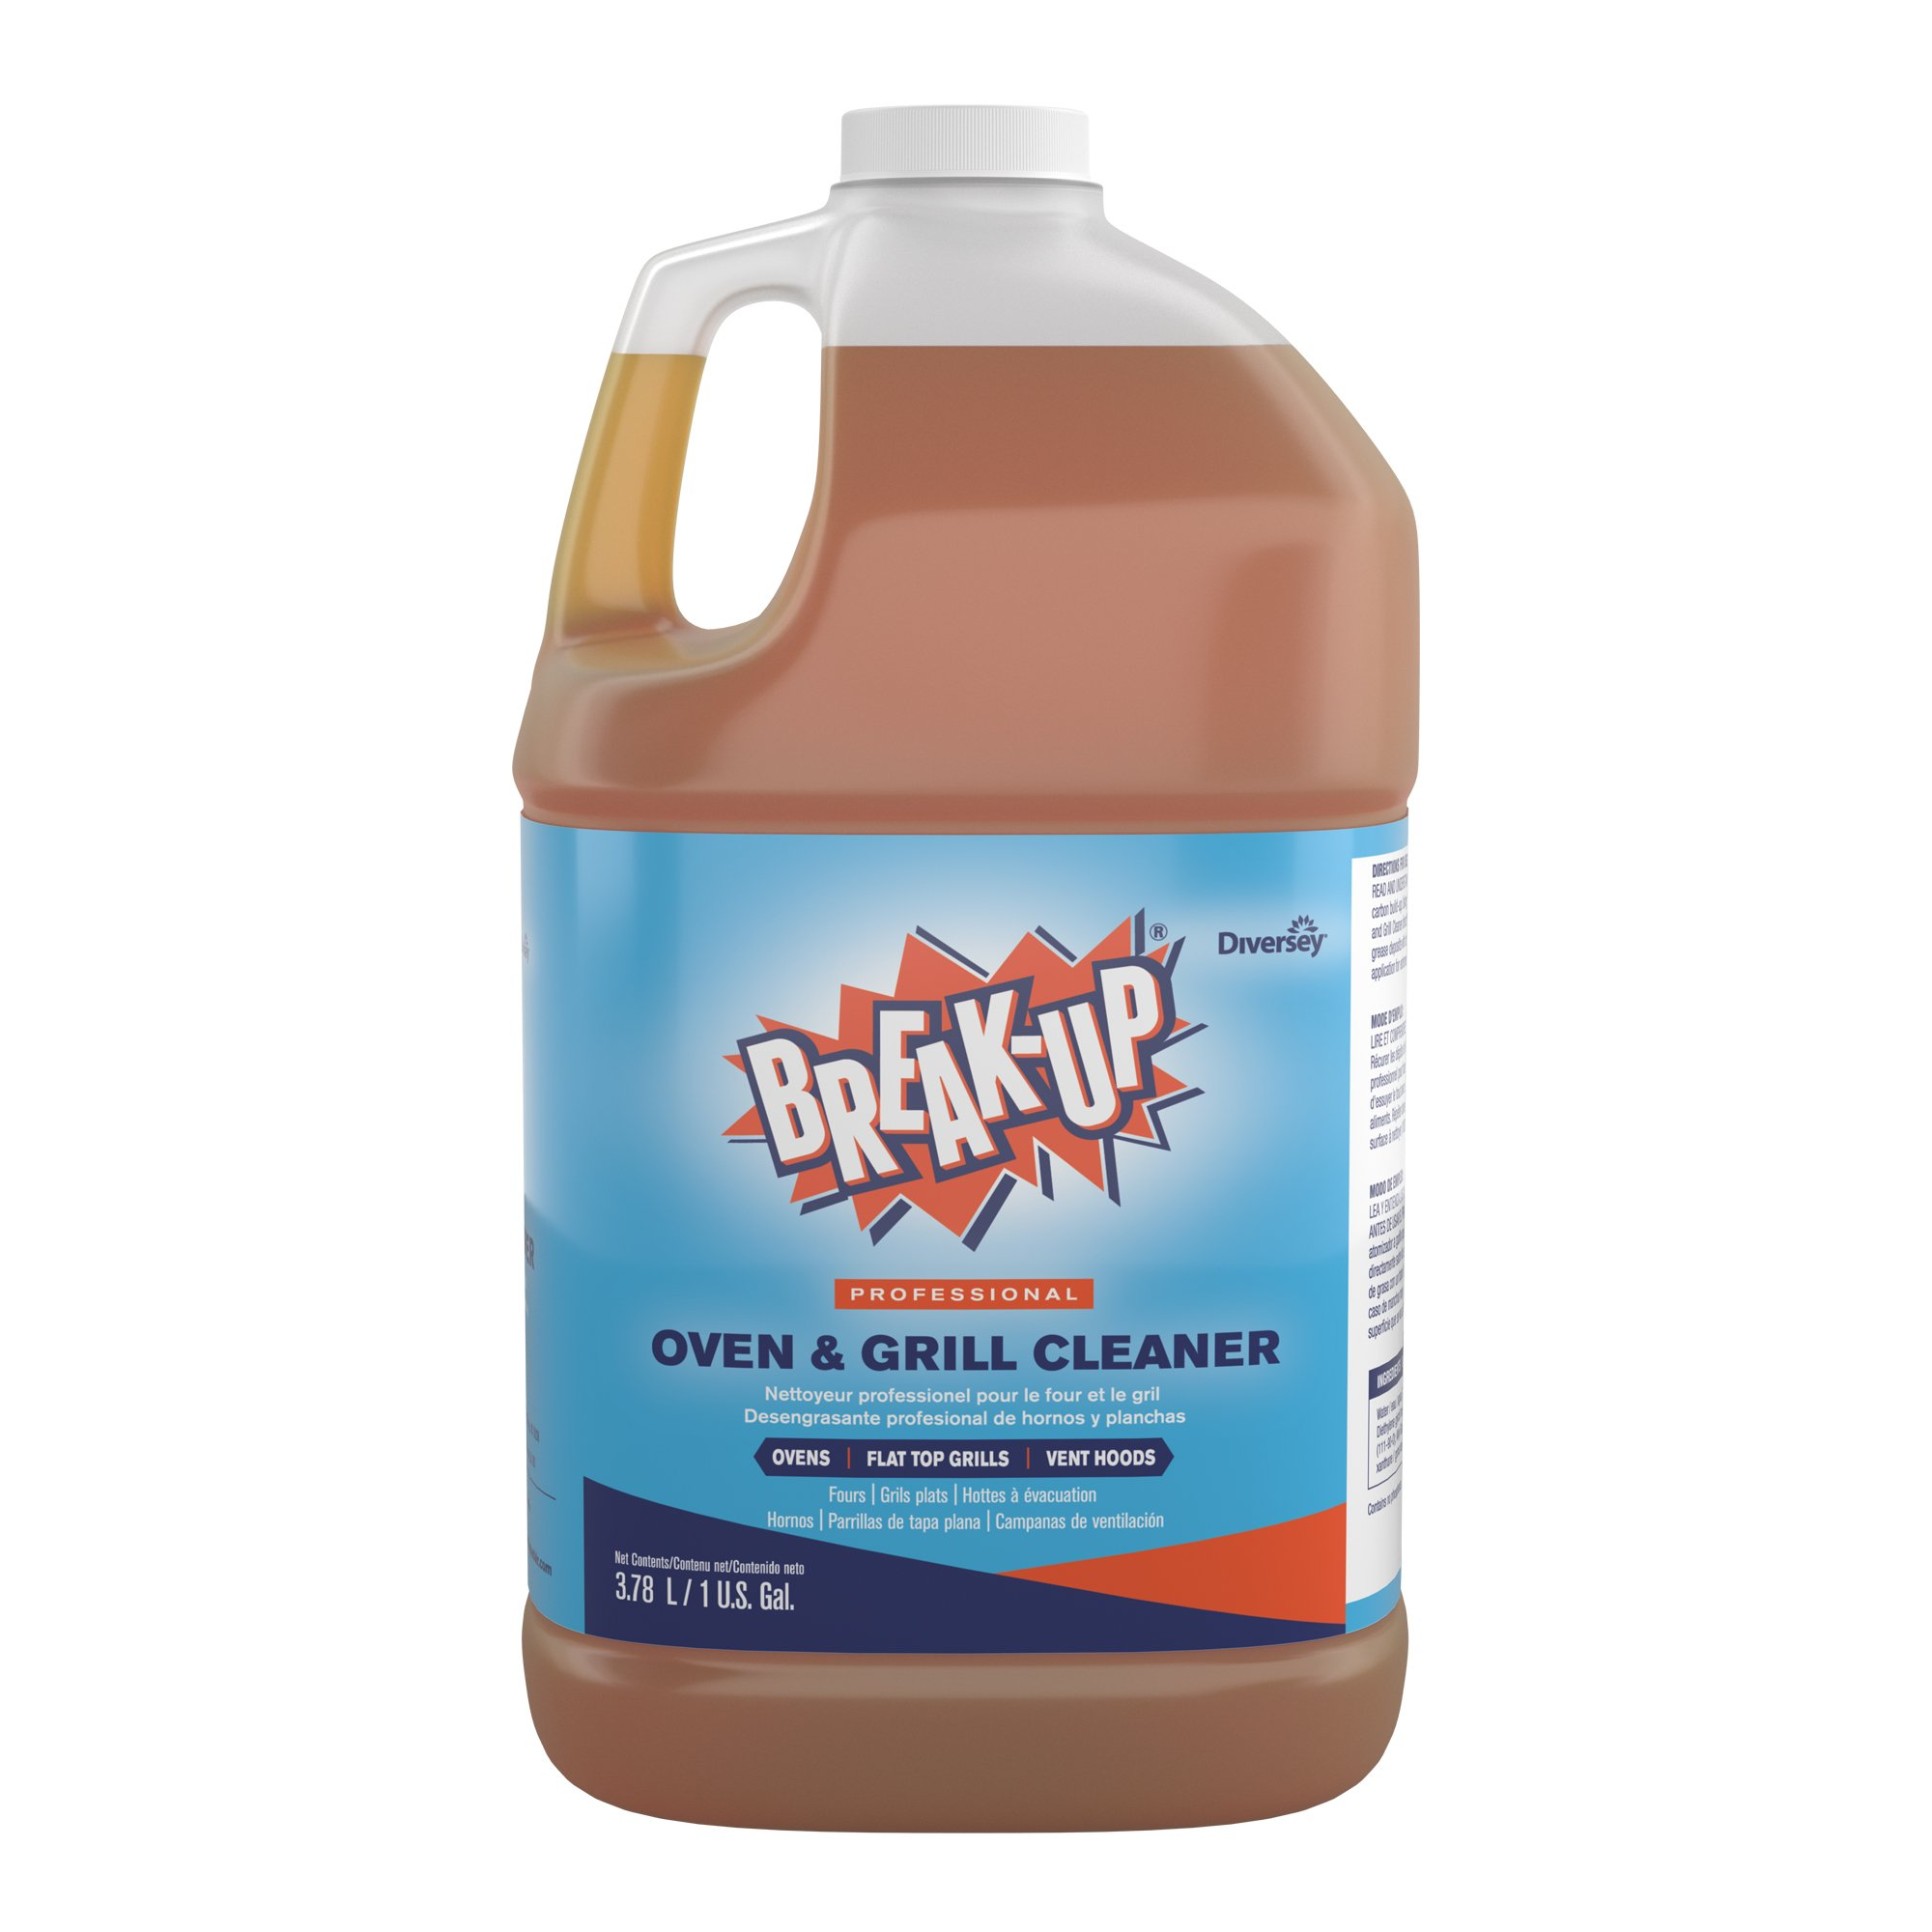 Diversey Break-up Professional Oven & Grill Cleaner, 1 Gallon (4 Pack)